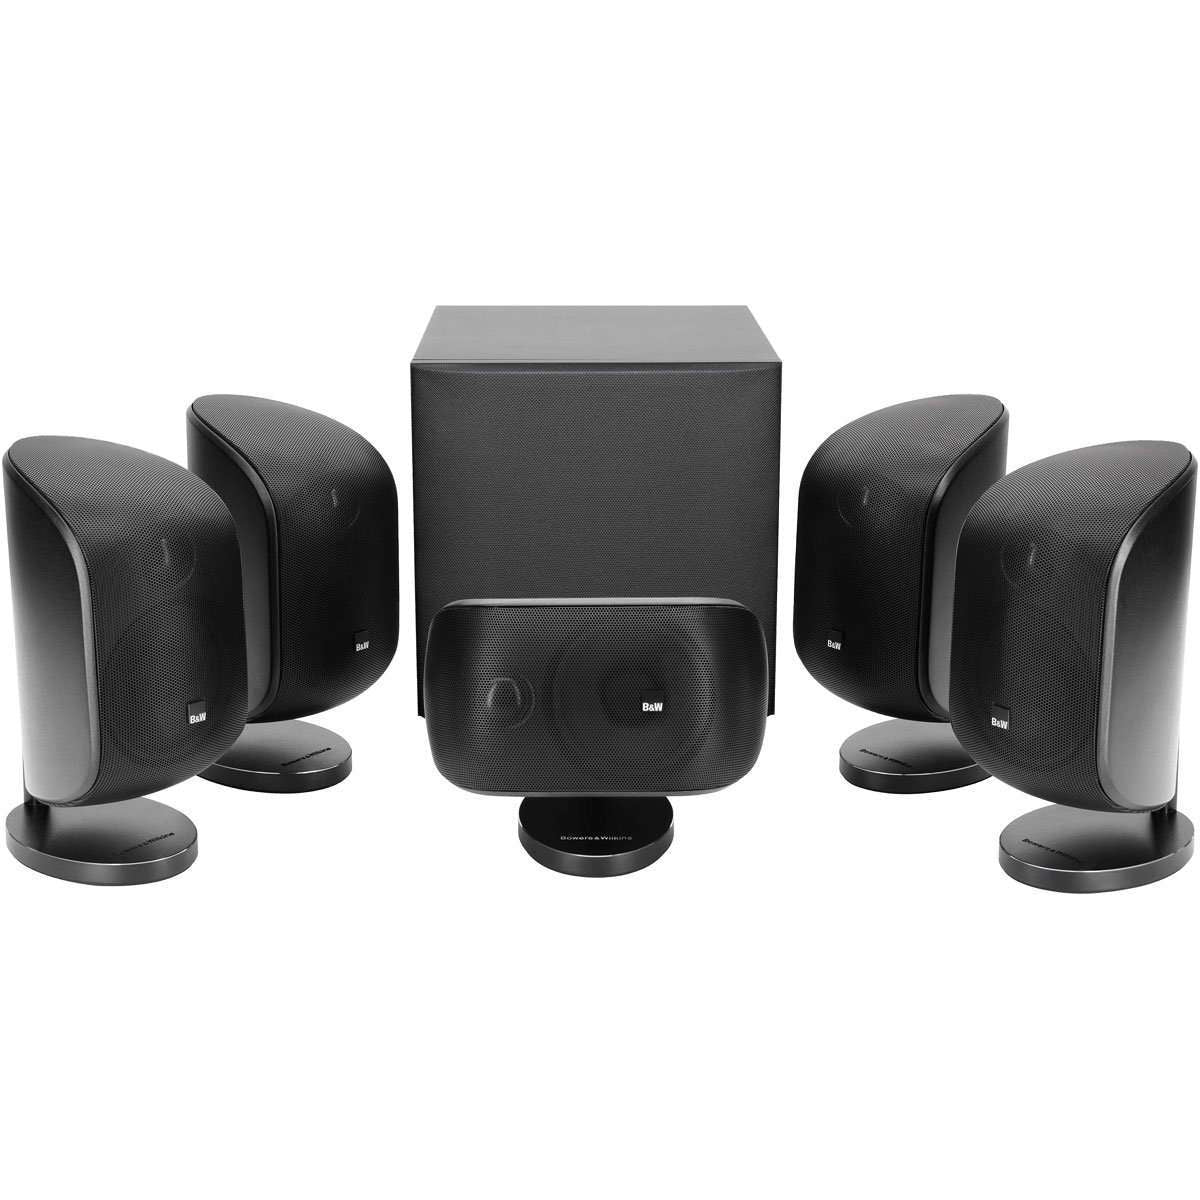 Bowers & Wilkins MT-50 5.1 Speaker Package